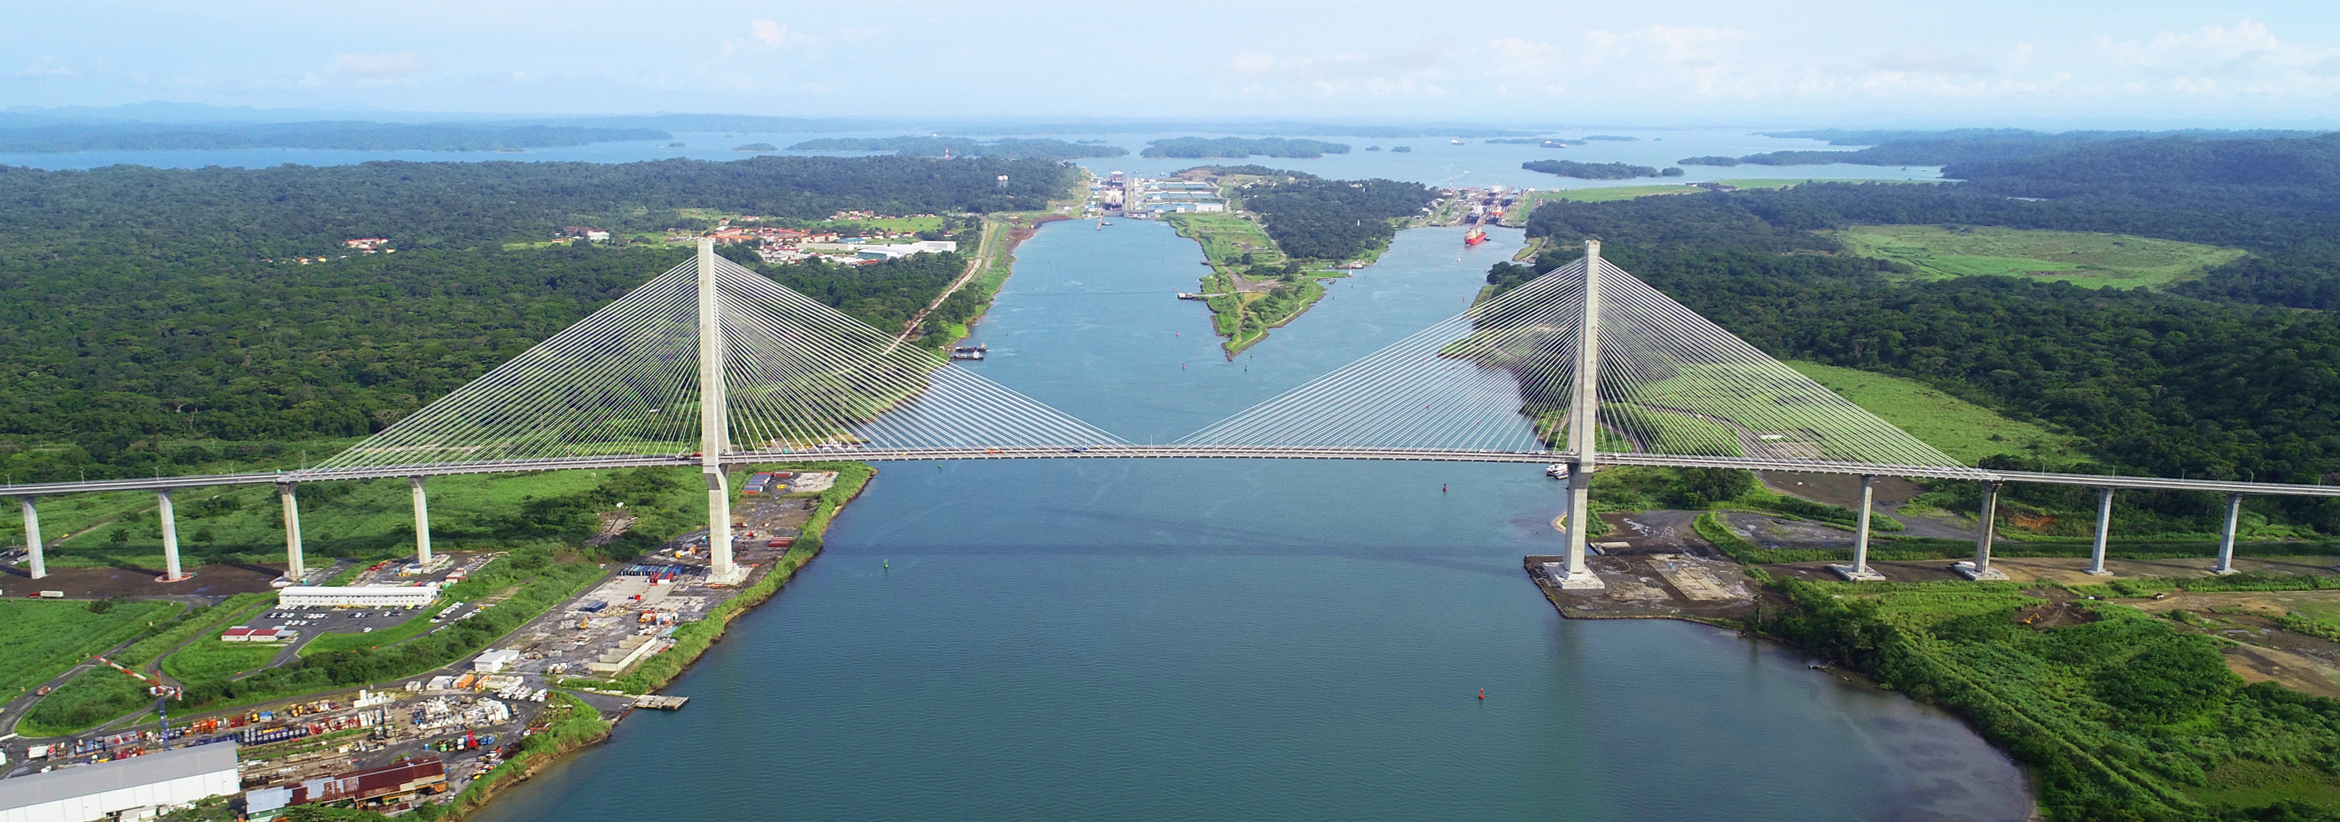 3rd PANAMA CANAL CROSSING